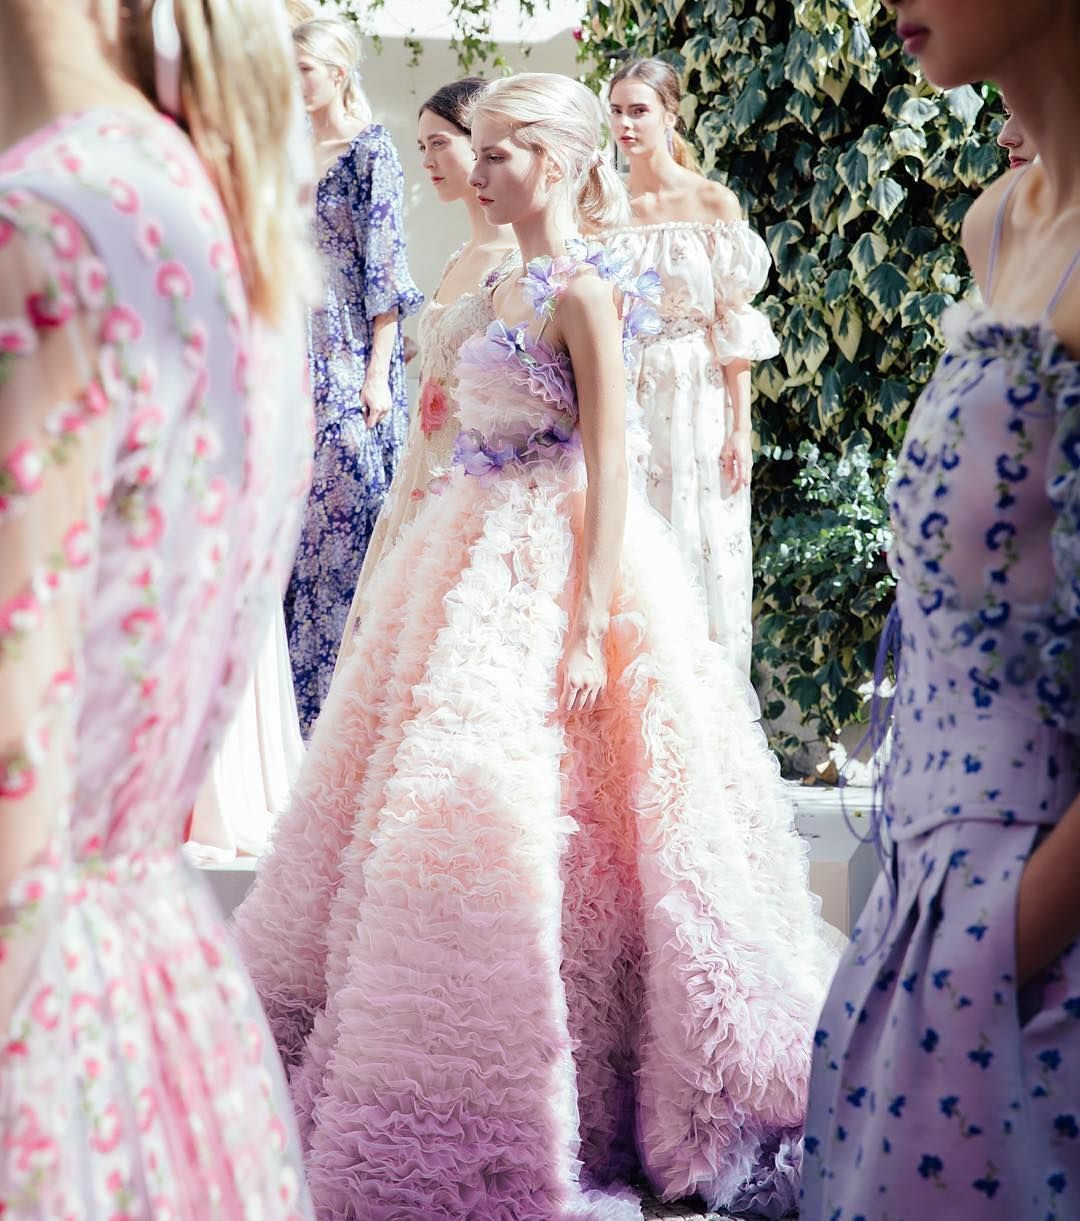 The colour palette of Luisa Beccaria's #SS16 collection makes for the perfect #weddinginspiration! We love these feminine tones for pastel-hued #bridesmaid dresses or pink and purple #floral arrangements. | WedLuxe Magazine | #wedding #luxury #weddinginspiration #dresses #fashion